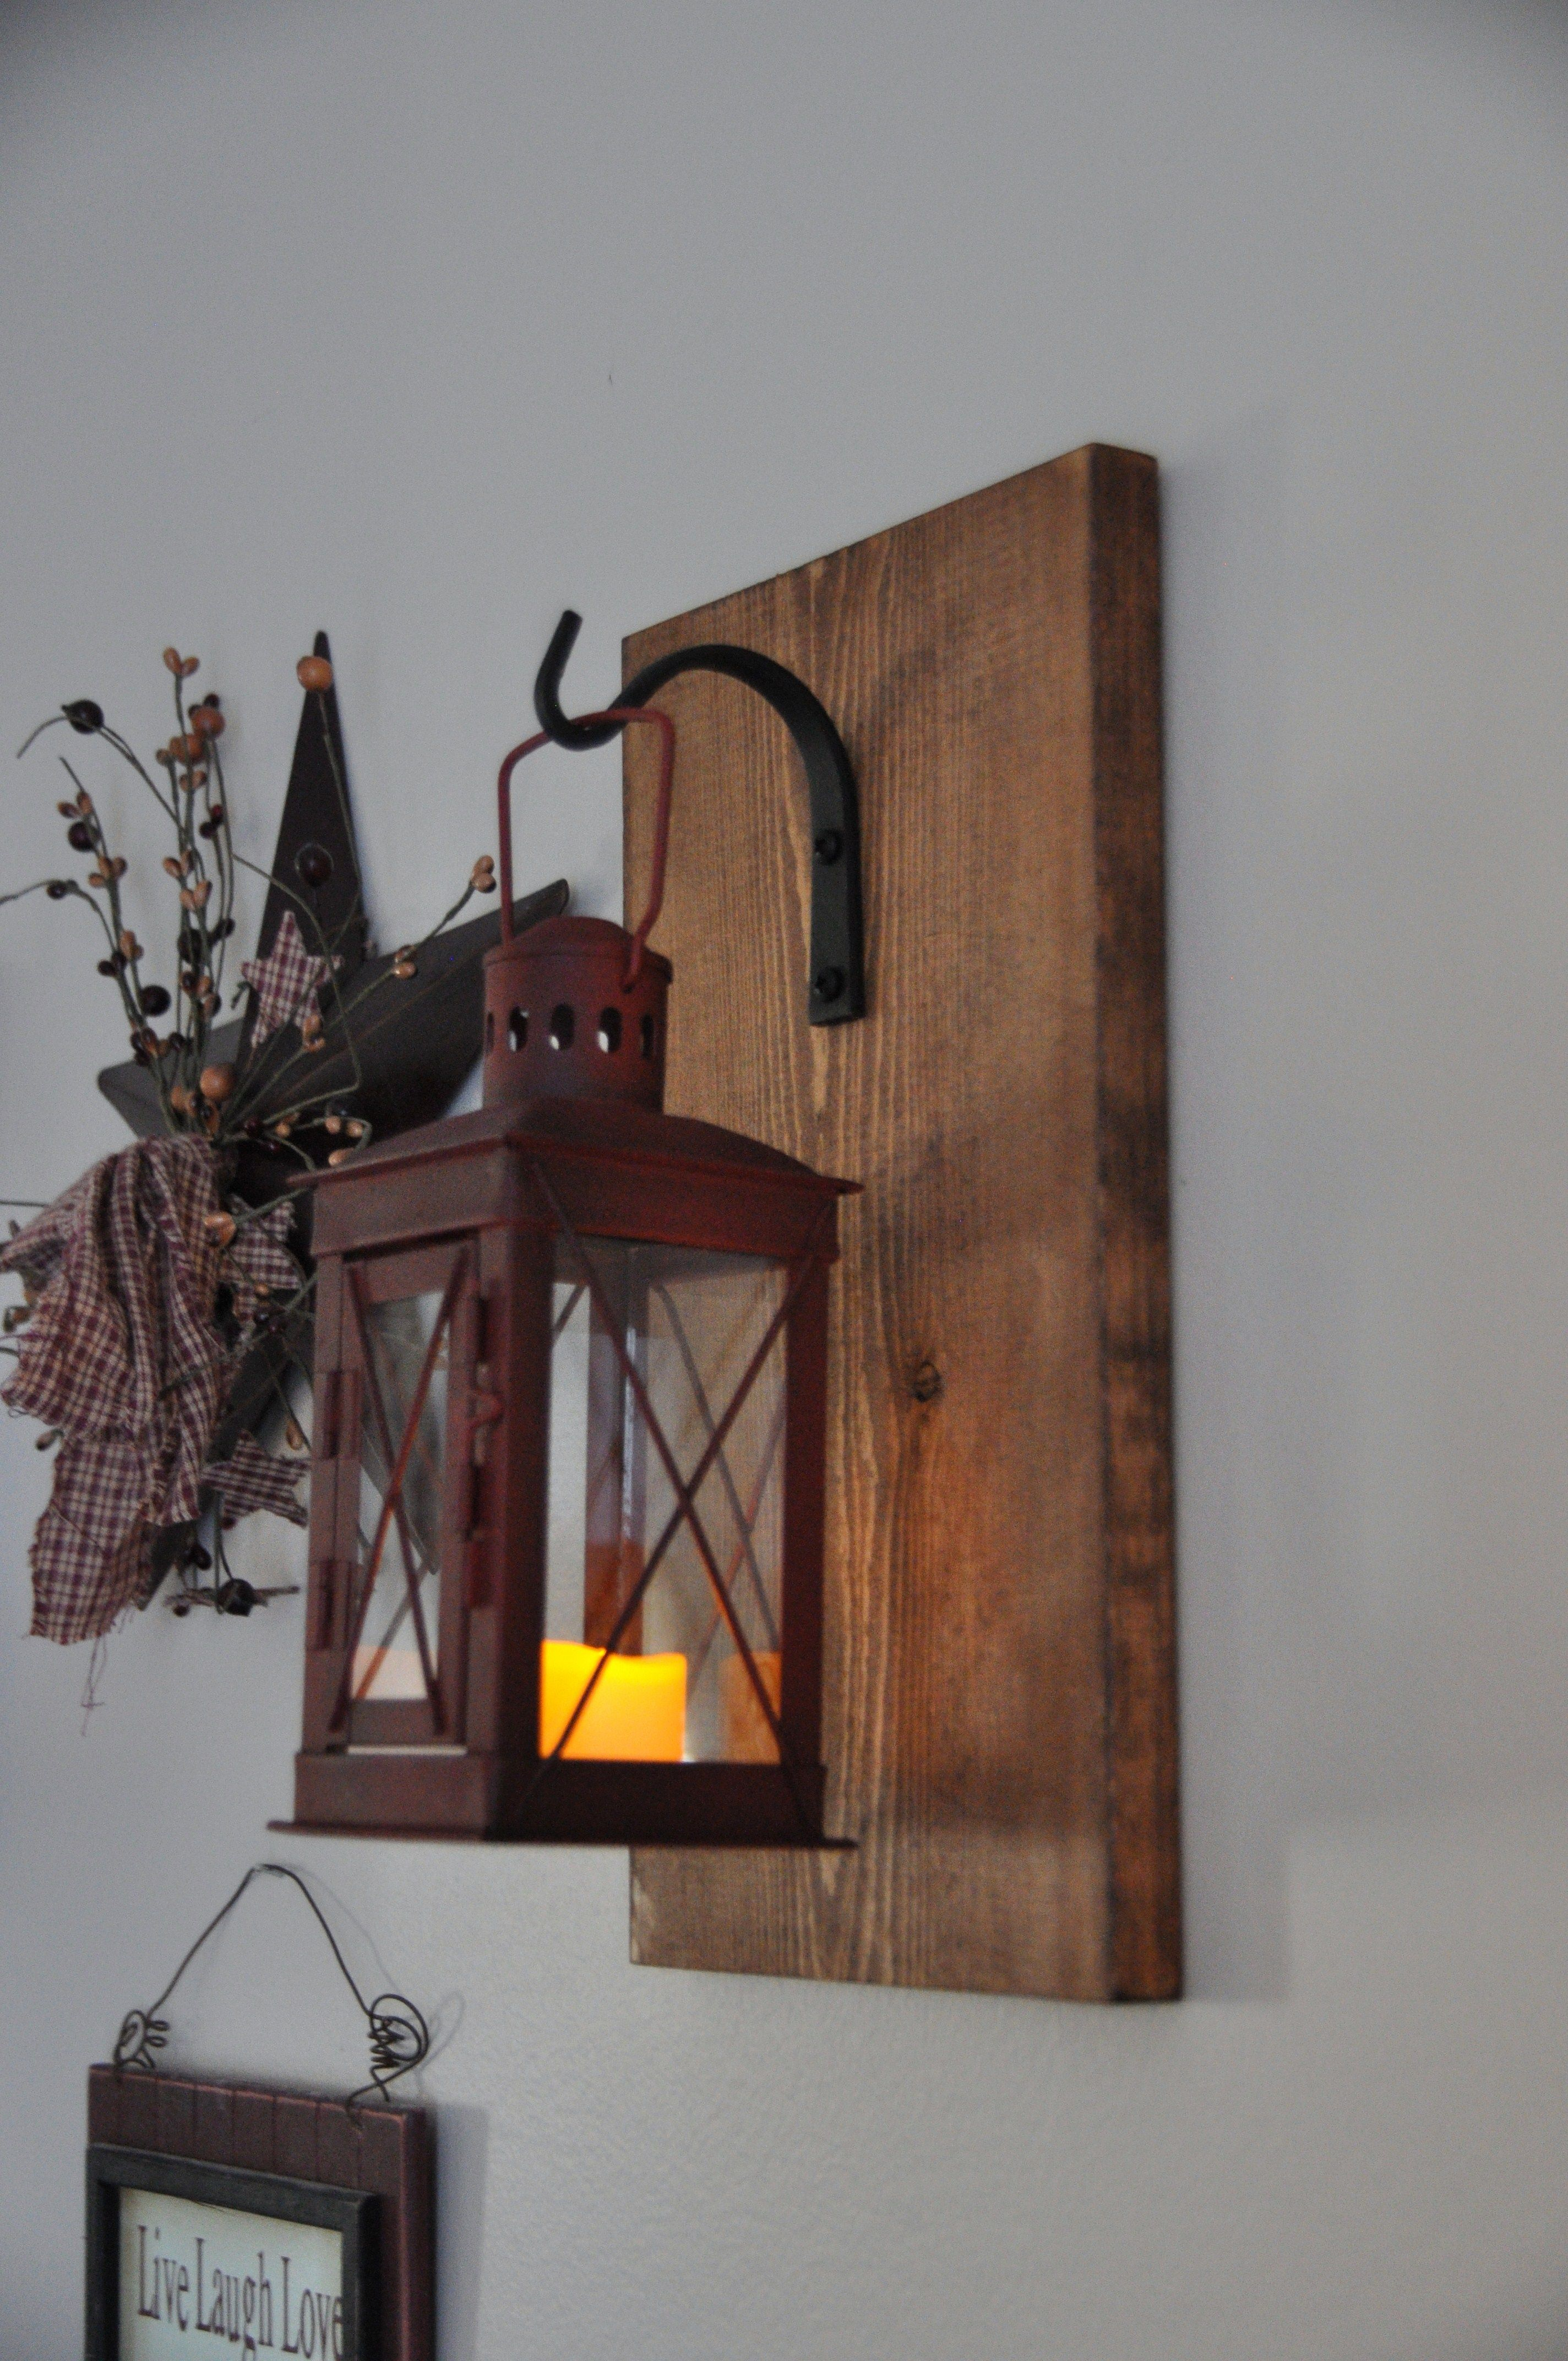 Rustic wood farmhouse style candle holder with red metal lantern